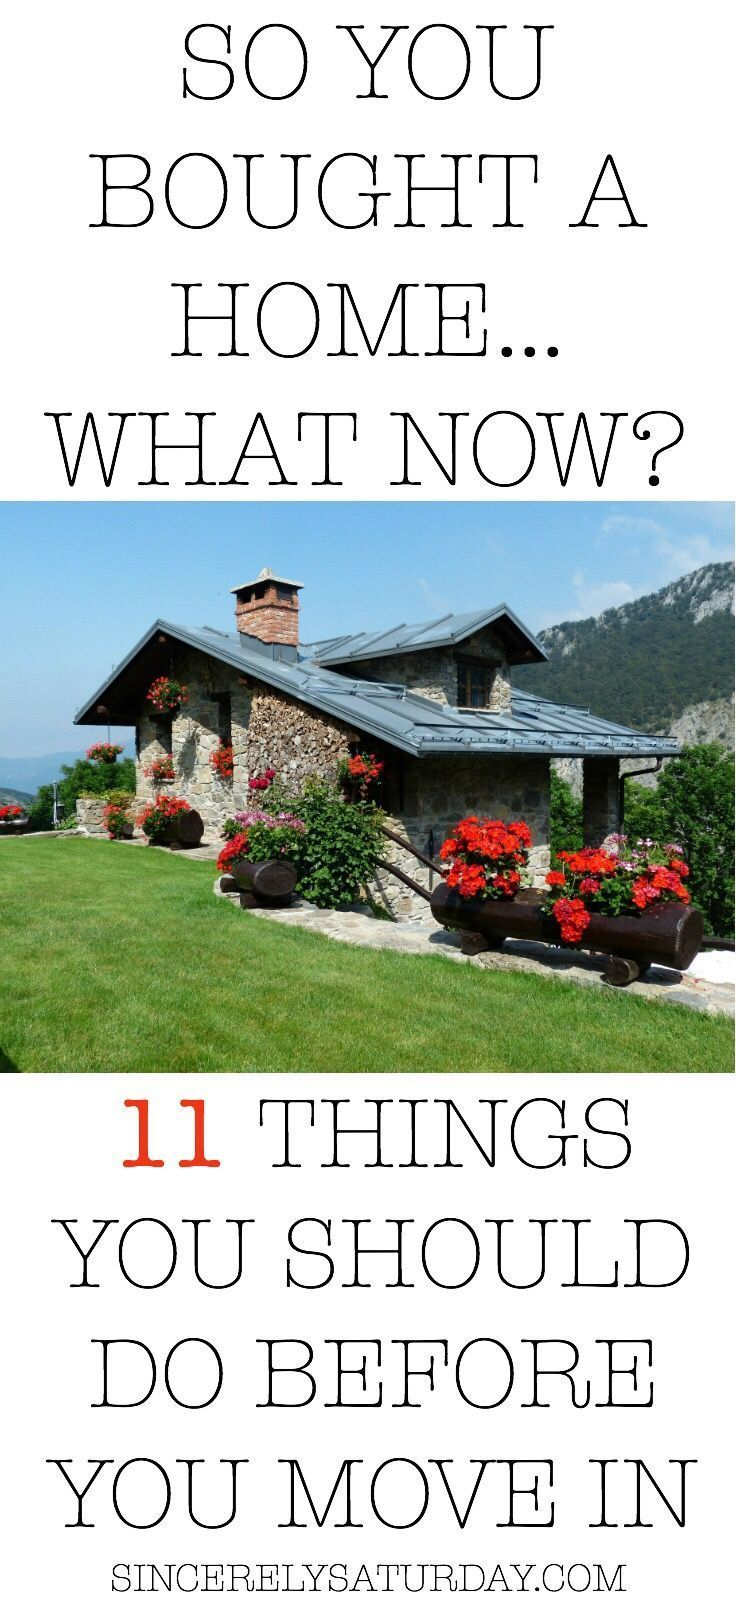 Tips for new homeowners. Things you need to do before moving into a new house. If you are a first time home buyer these tips and trick can save you money and time!